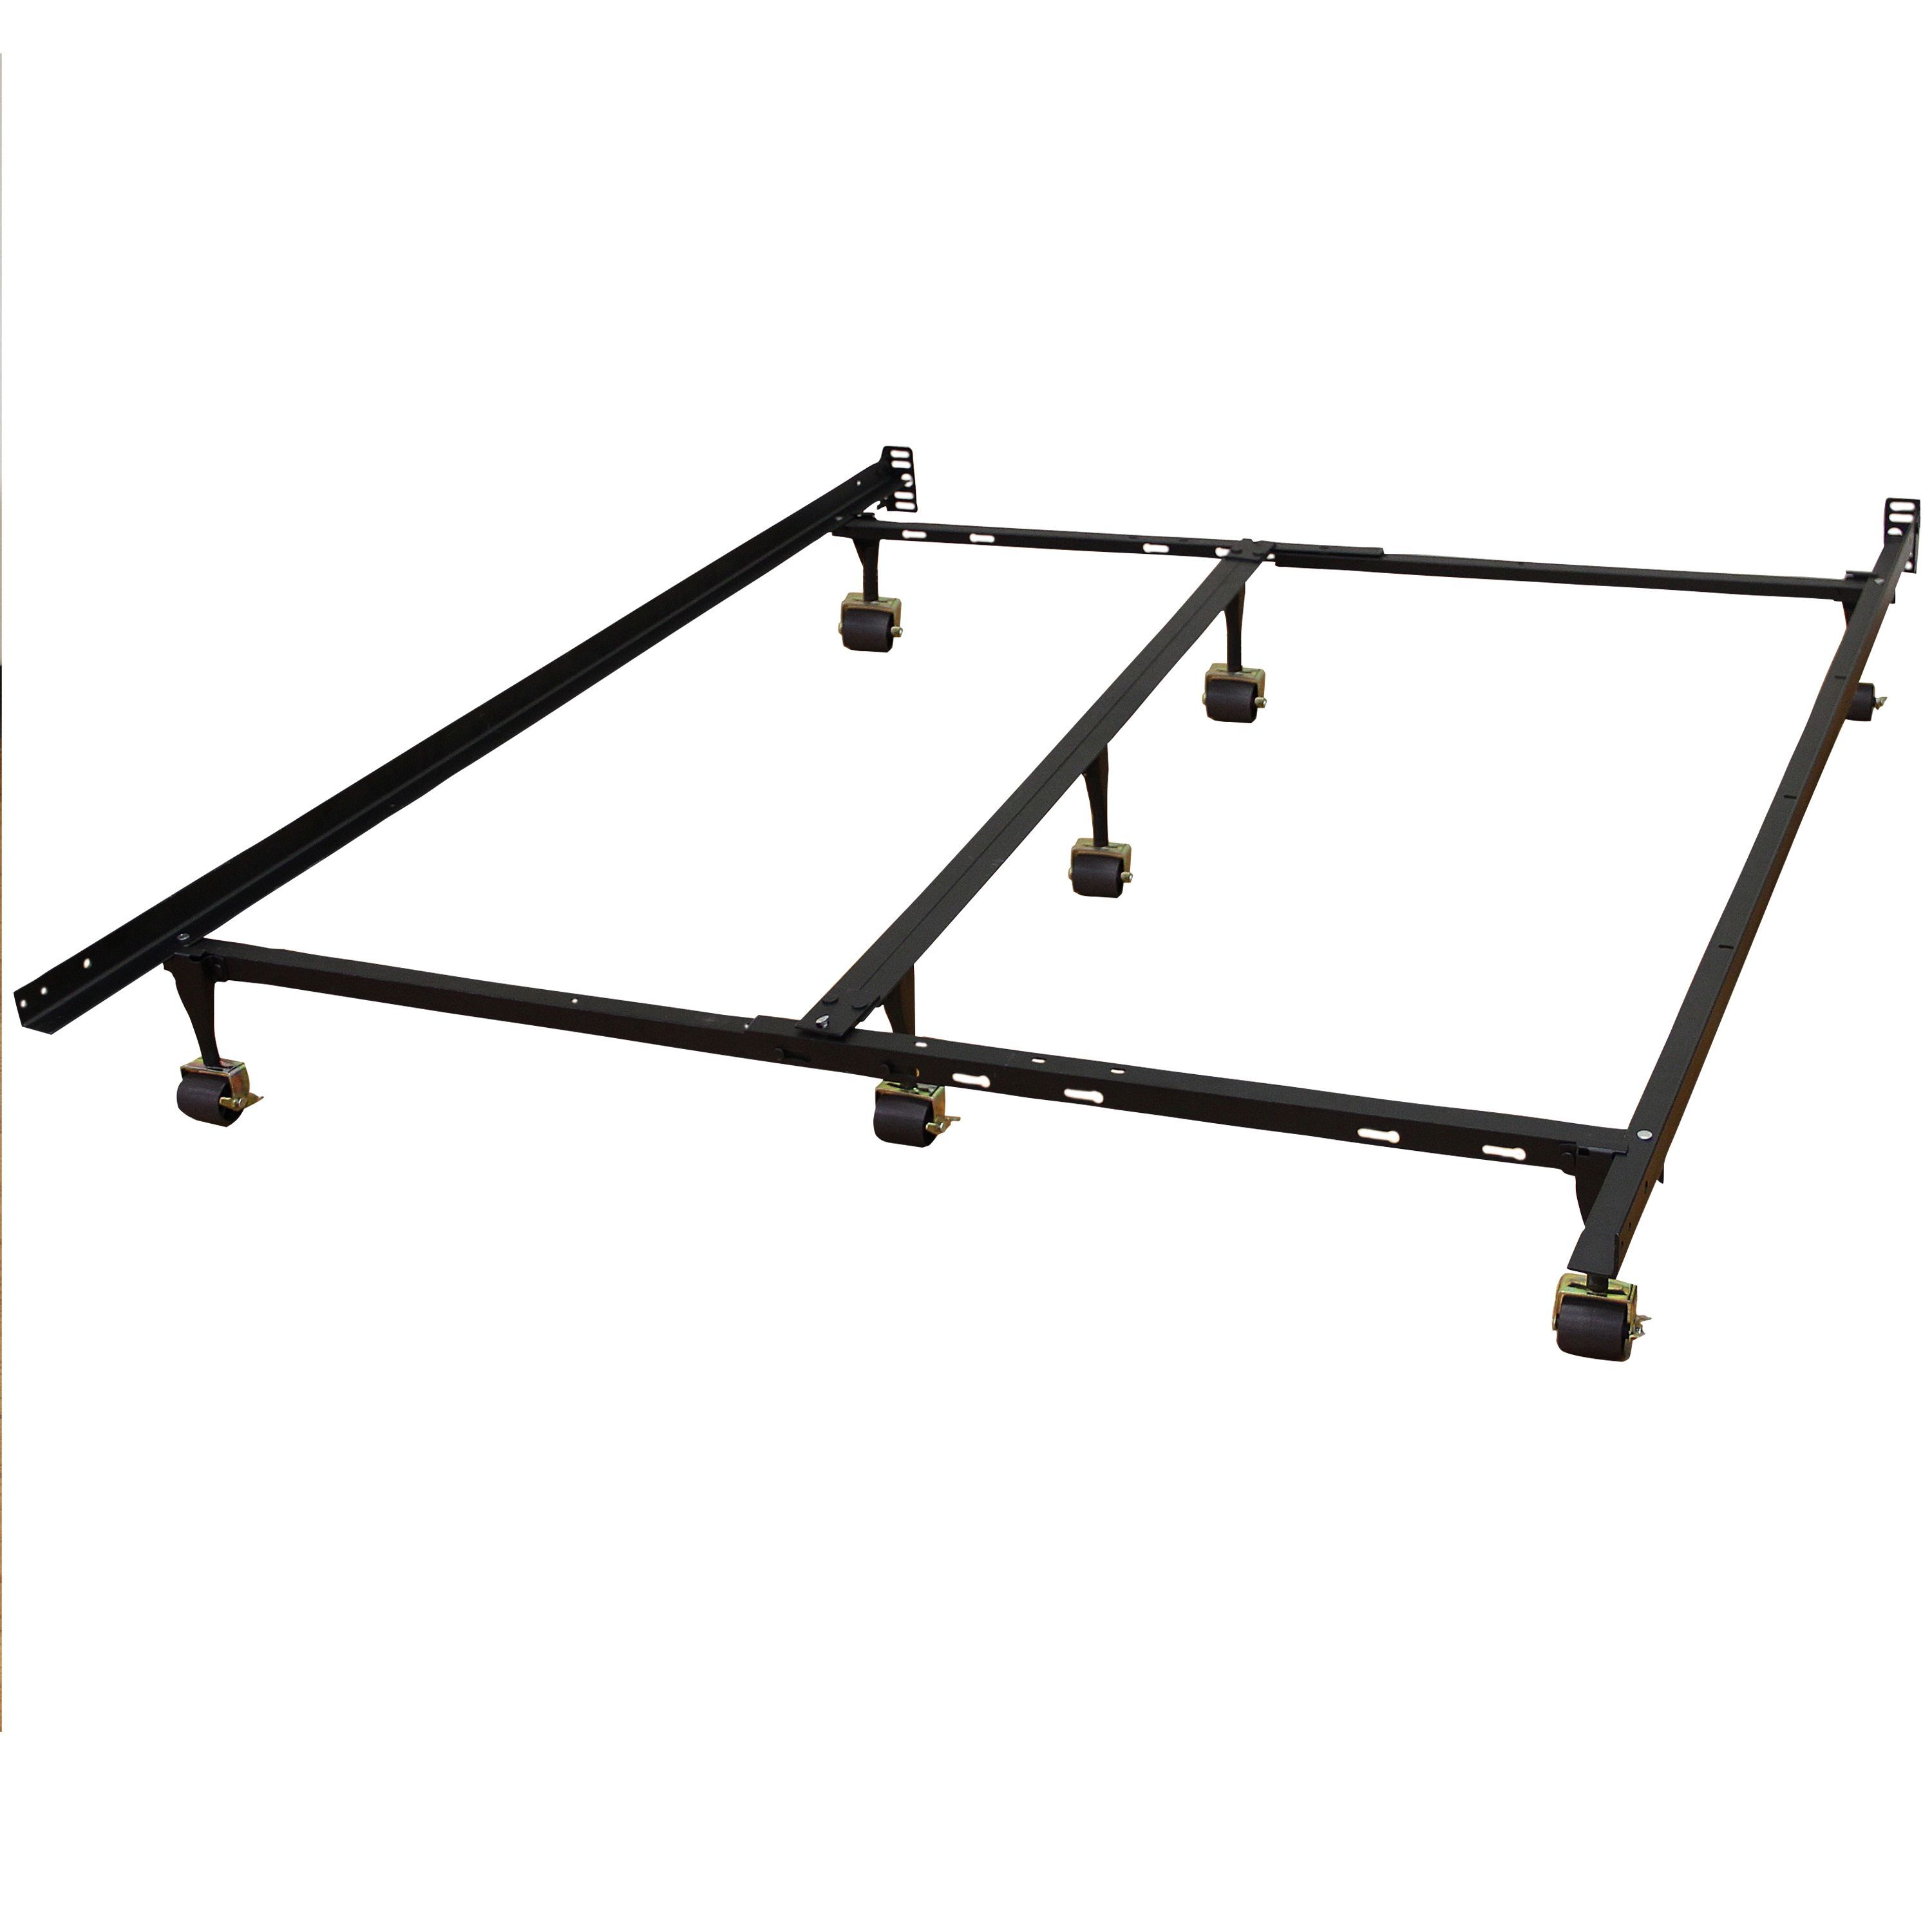 Size Adjustable Steel Bed Frame With Casters Wheels Heavy Duty Twin Full Queen